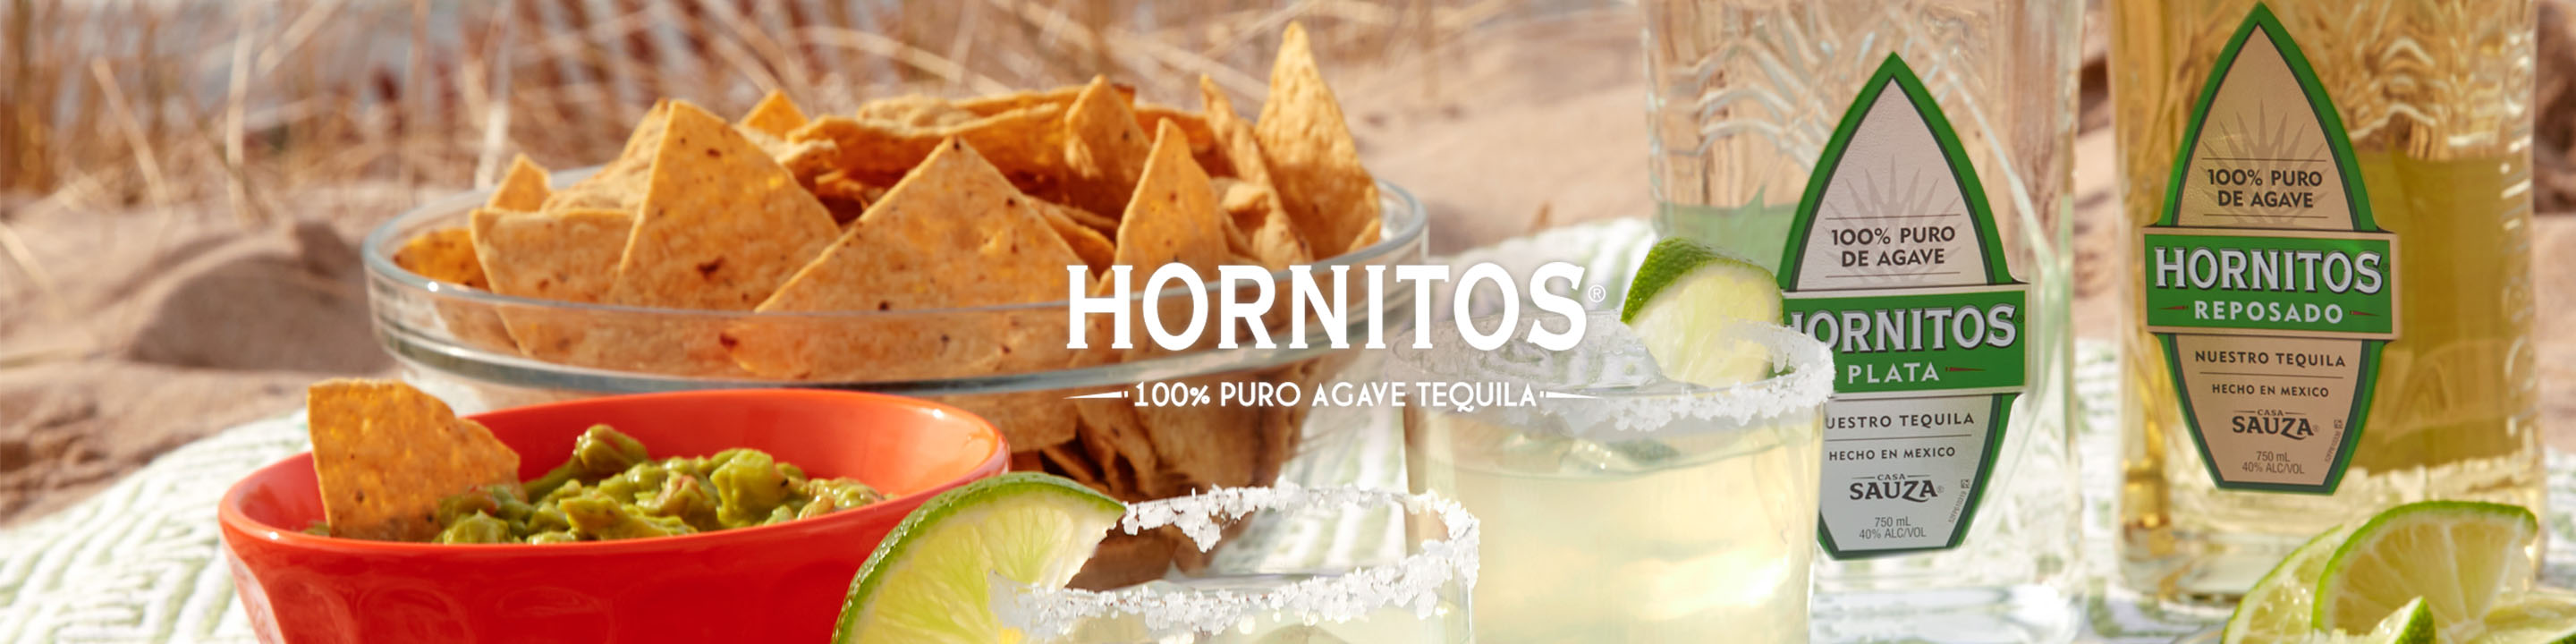 "Hailing from Tequila, Jalisco in Mexico, Hornitos Tequila (named after the ""little ovens"" used to roast agave) was introduced to the world in 1950 by founder Don Francisco Javier Sauza in honor of Mexican Independence Day.